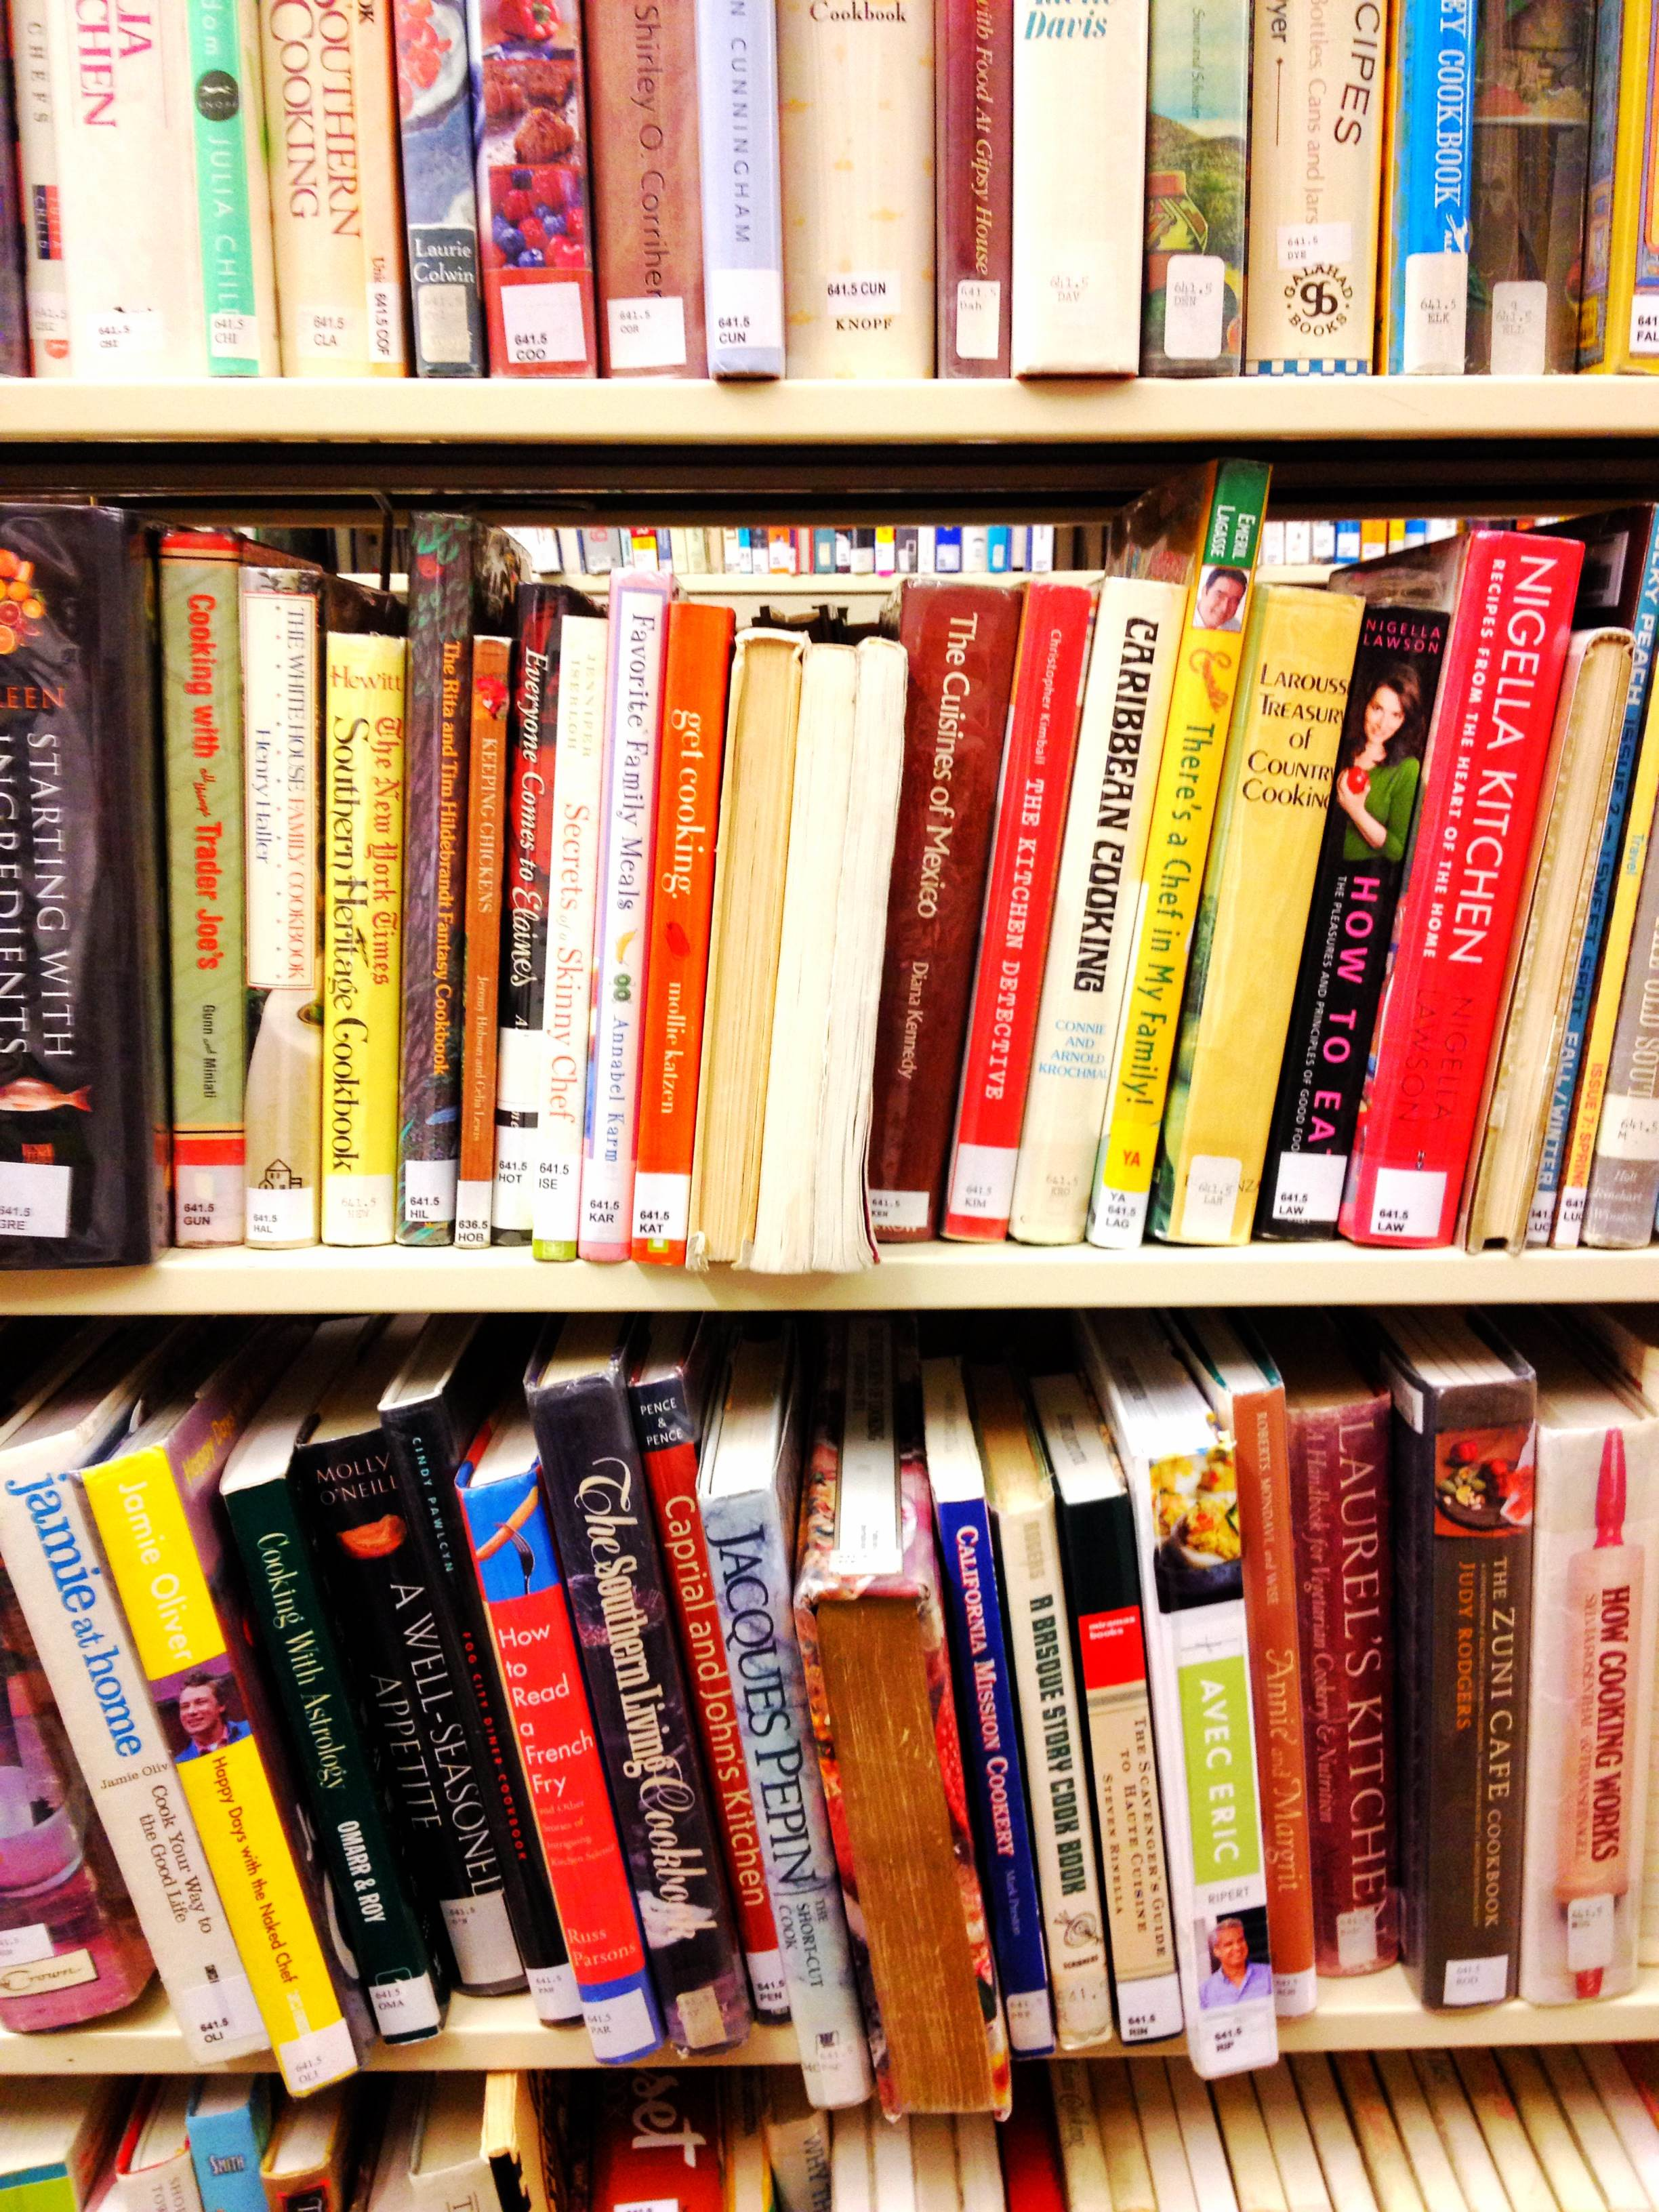 Have you checked out this section of the library? It's full of hidden gems! {Sunday Funday #6 on foodsforthesoul.net}